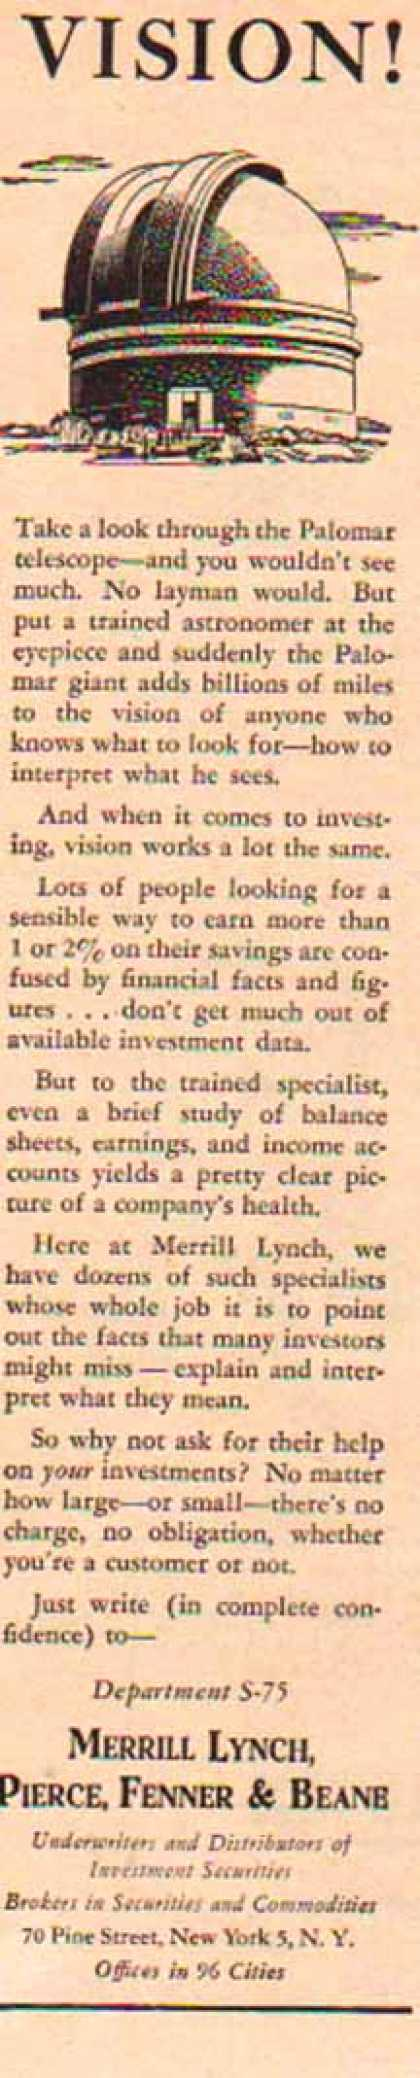 Merrill Lynch – Vision (1949)